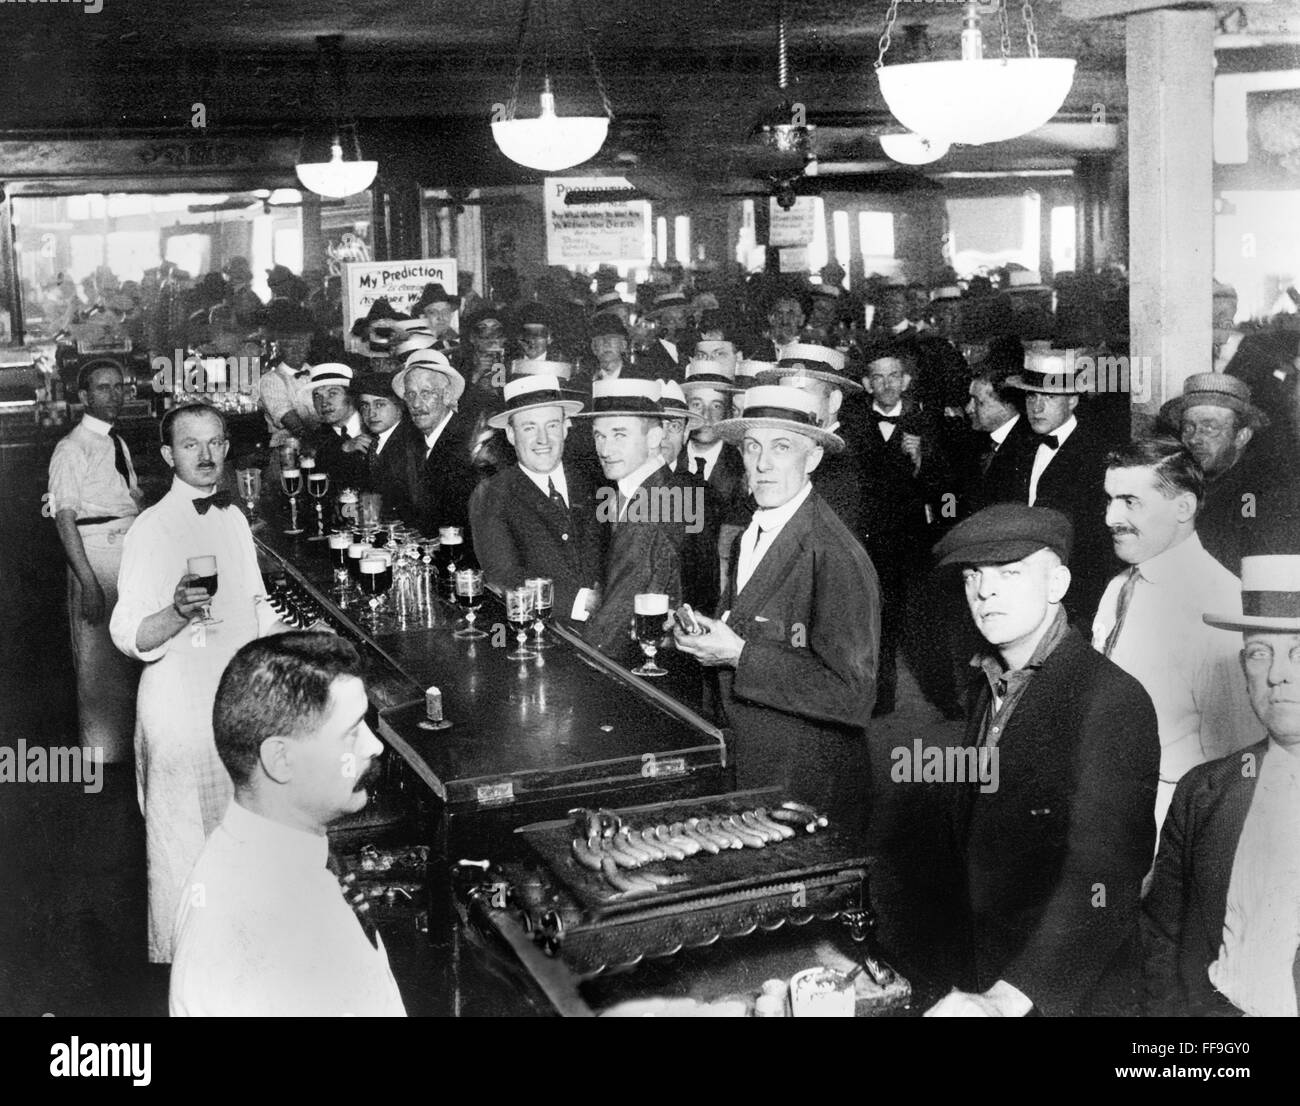 Prohibition, USA. Interior of a crowded bar moments before midnight on June 30, 1919, when prohibition went into - Stock Image